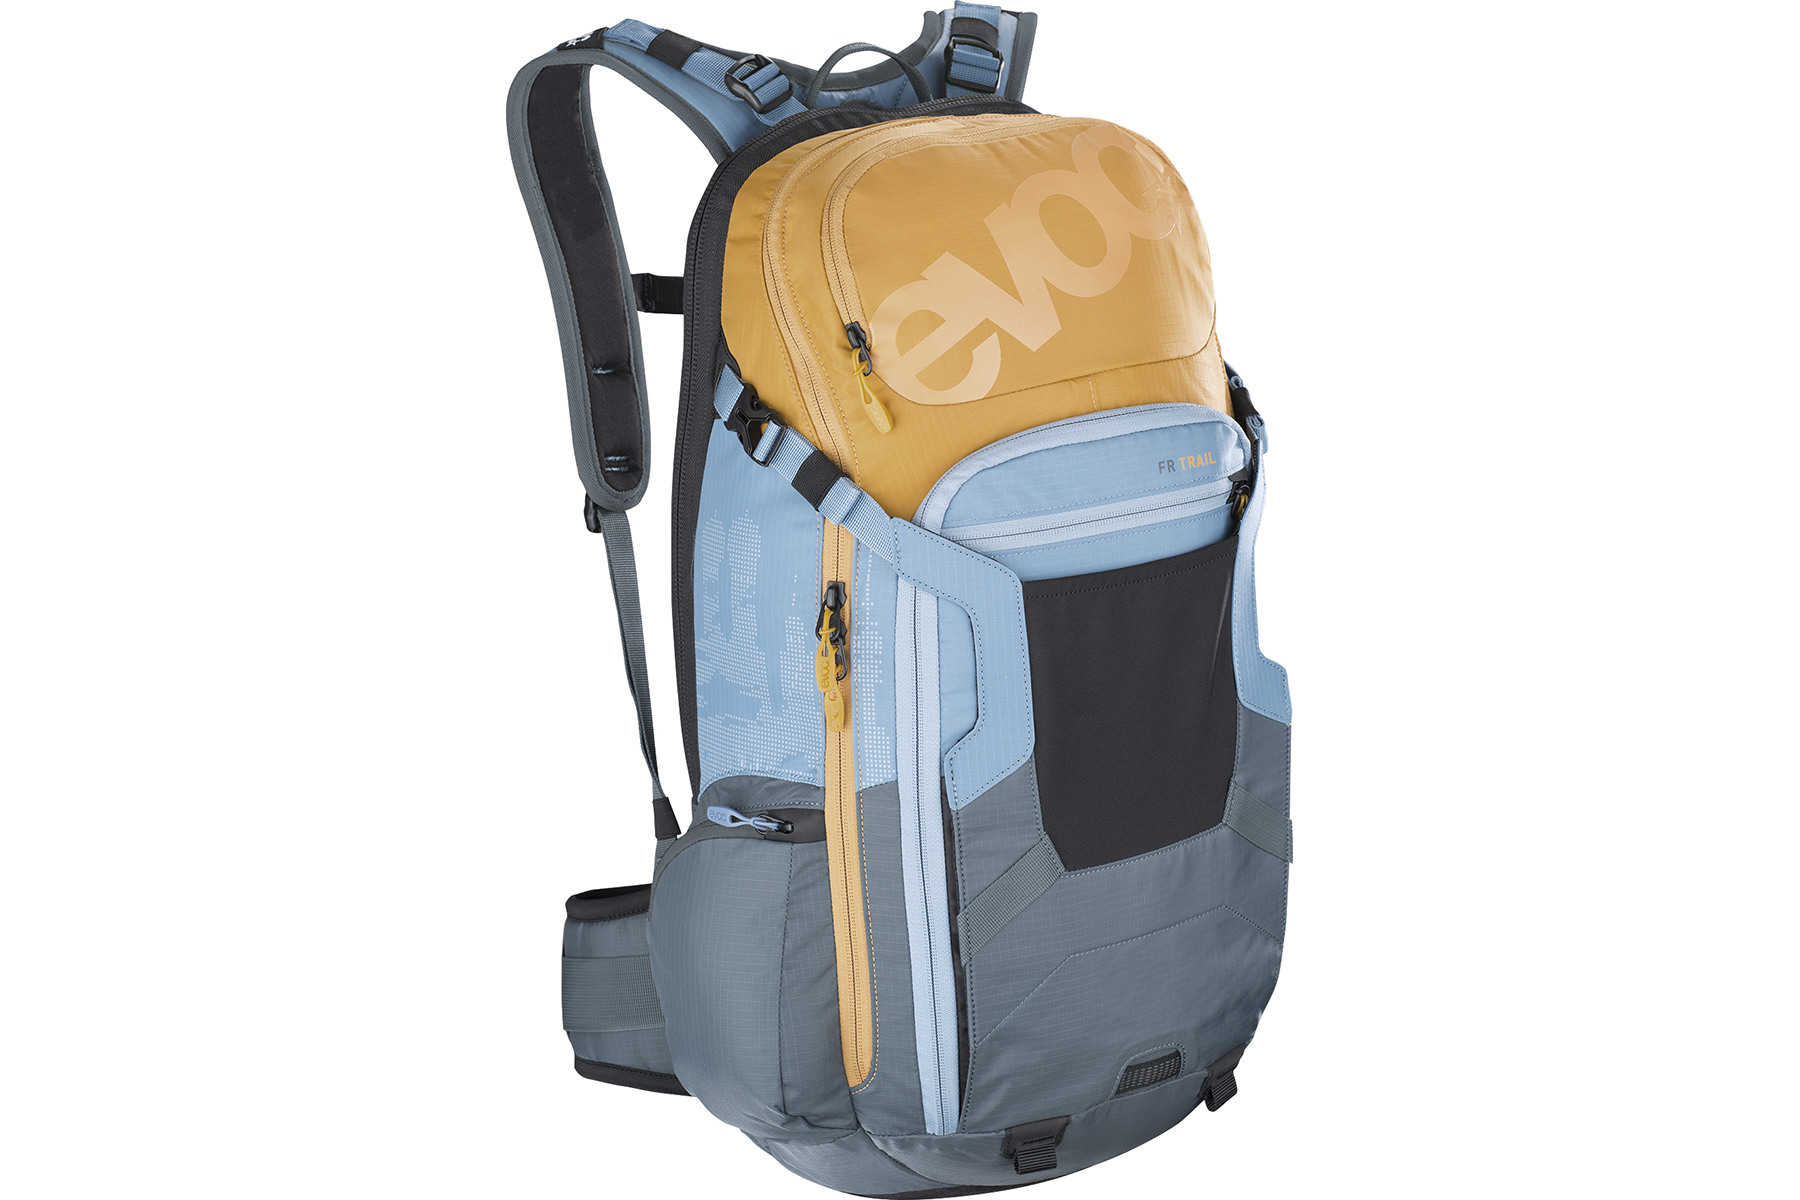 Image of Evoc FR Trail Rucksack 20L - Rucksäcke Small Multicolour